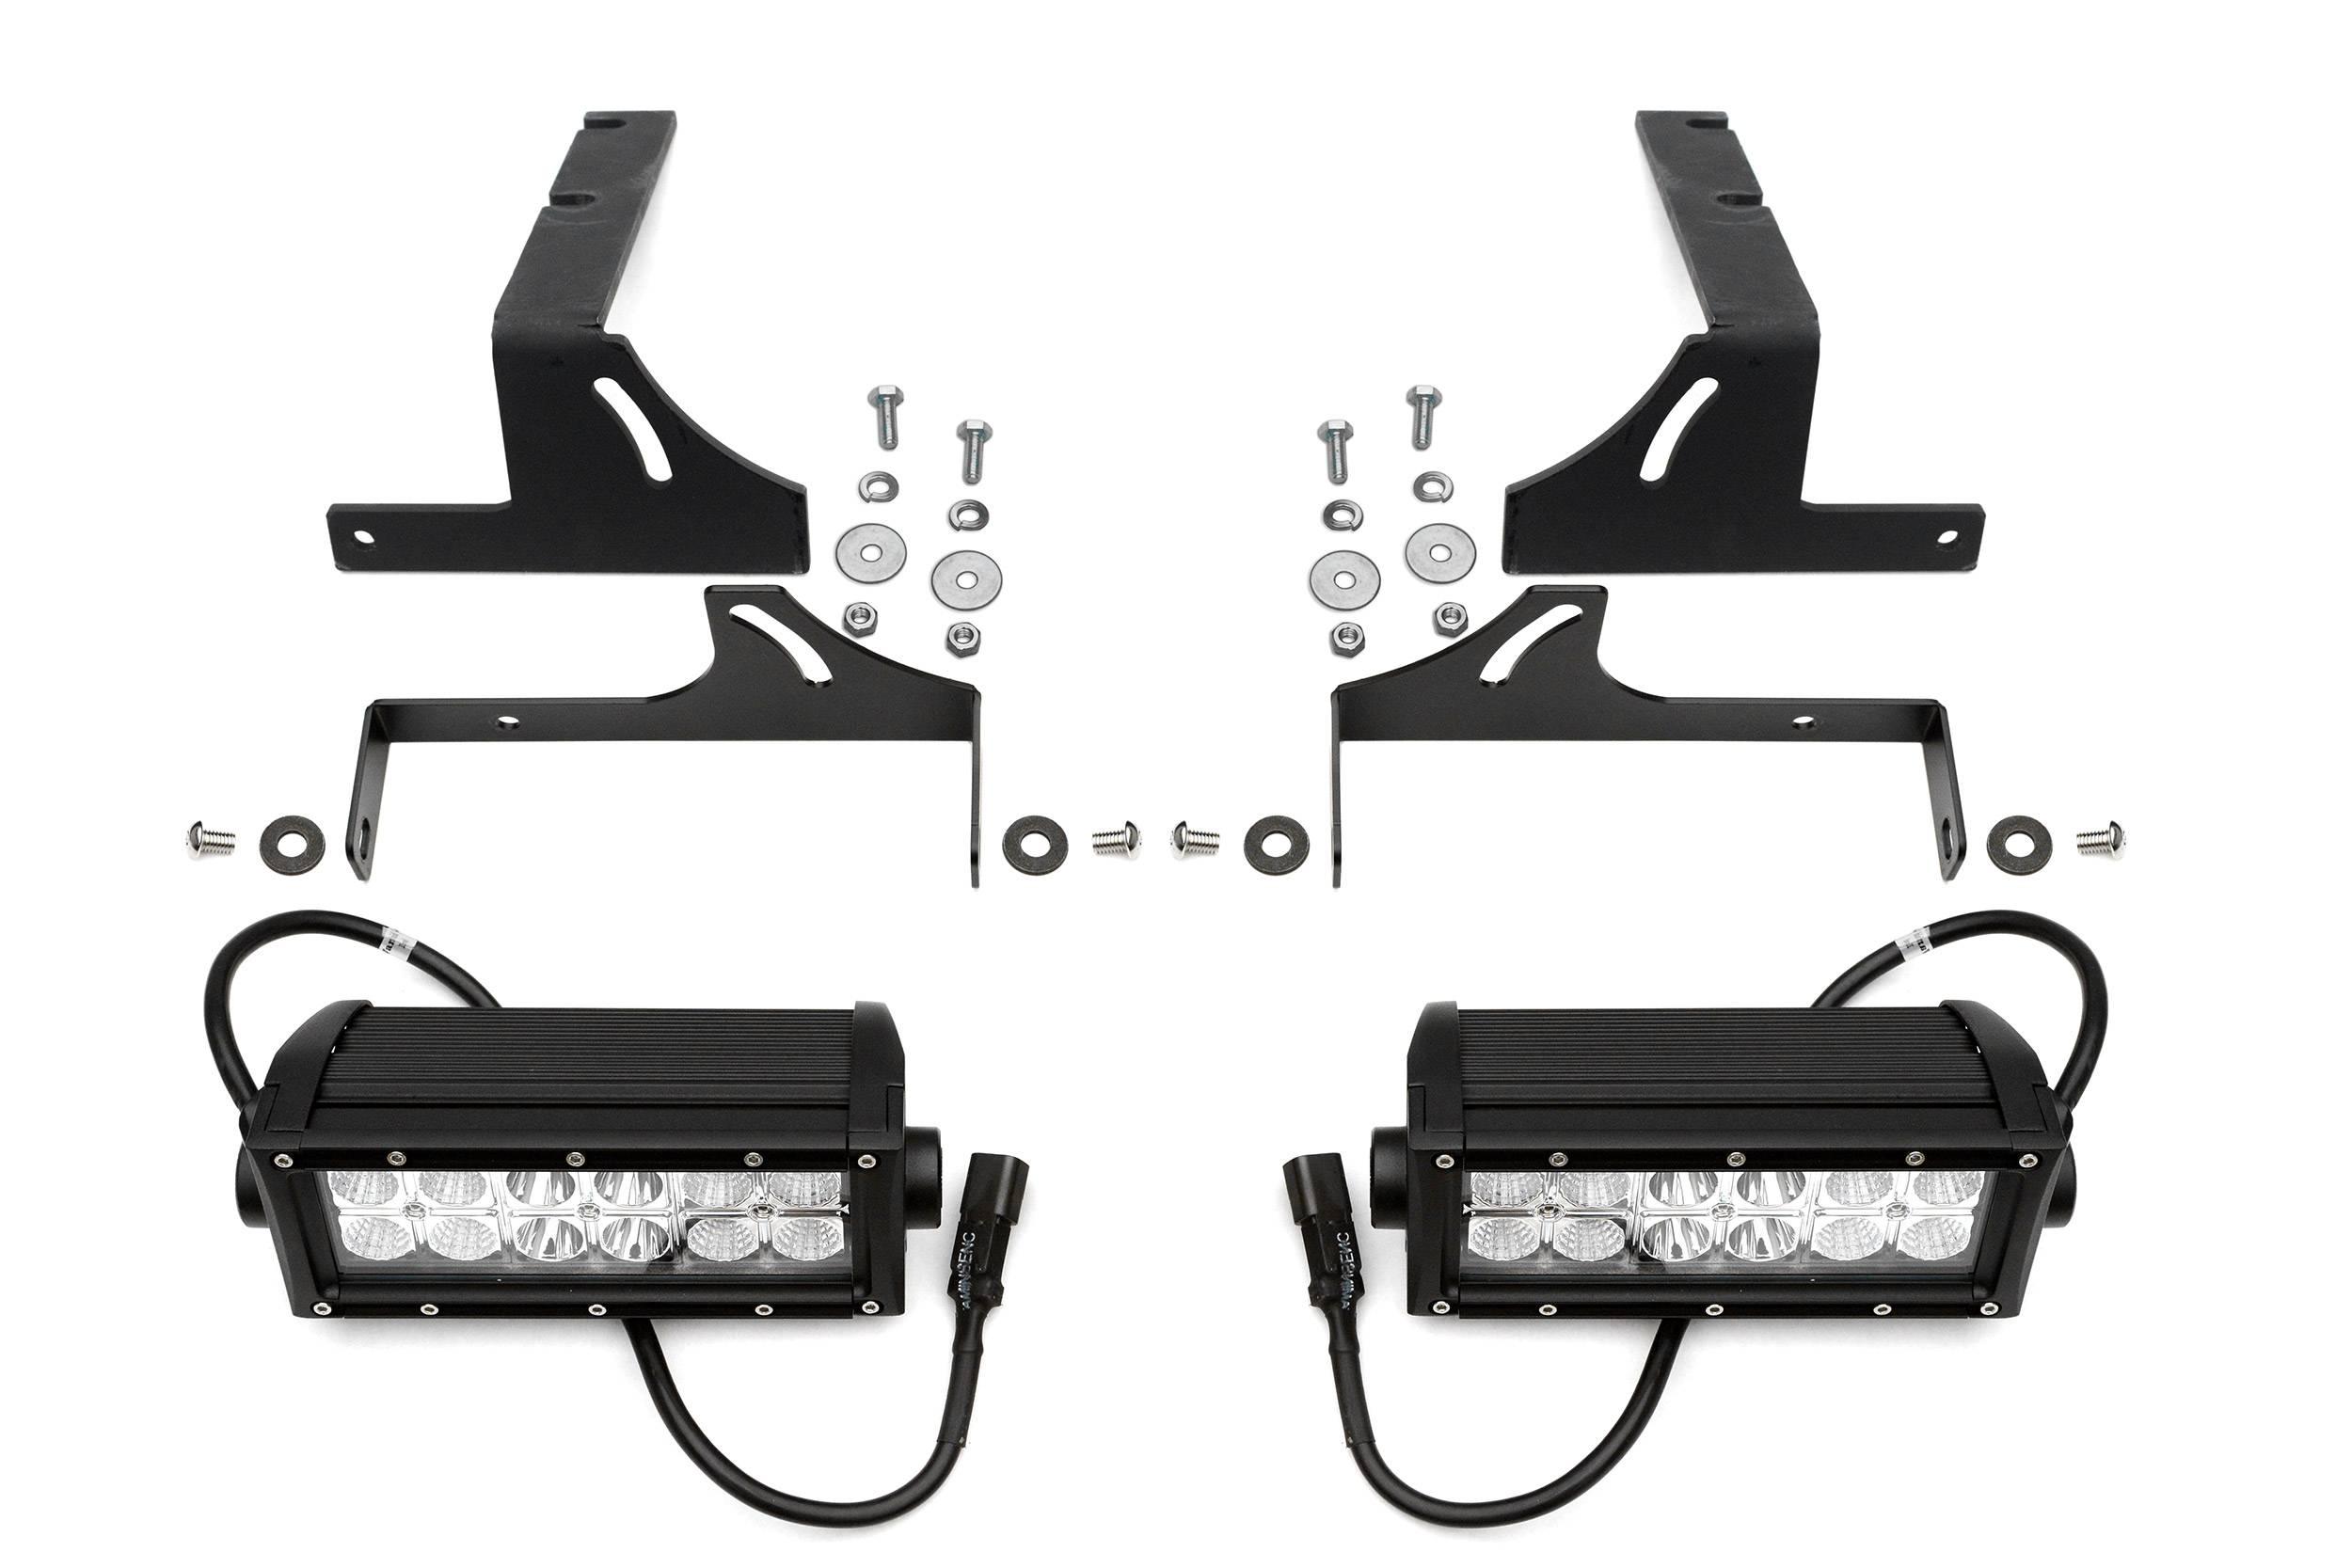 ZROADZ                                             - Silverado, Sierra 1500 Rear Bumper LED Kit  Incl. (2) 6 Inch LED Straight Double Row Light Bars - PN #Z382082-KIT